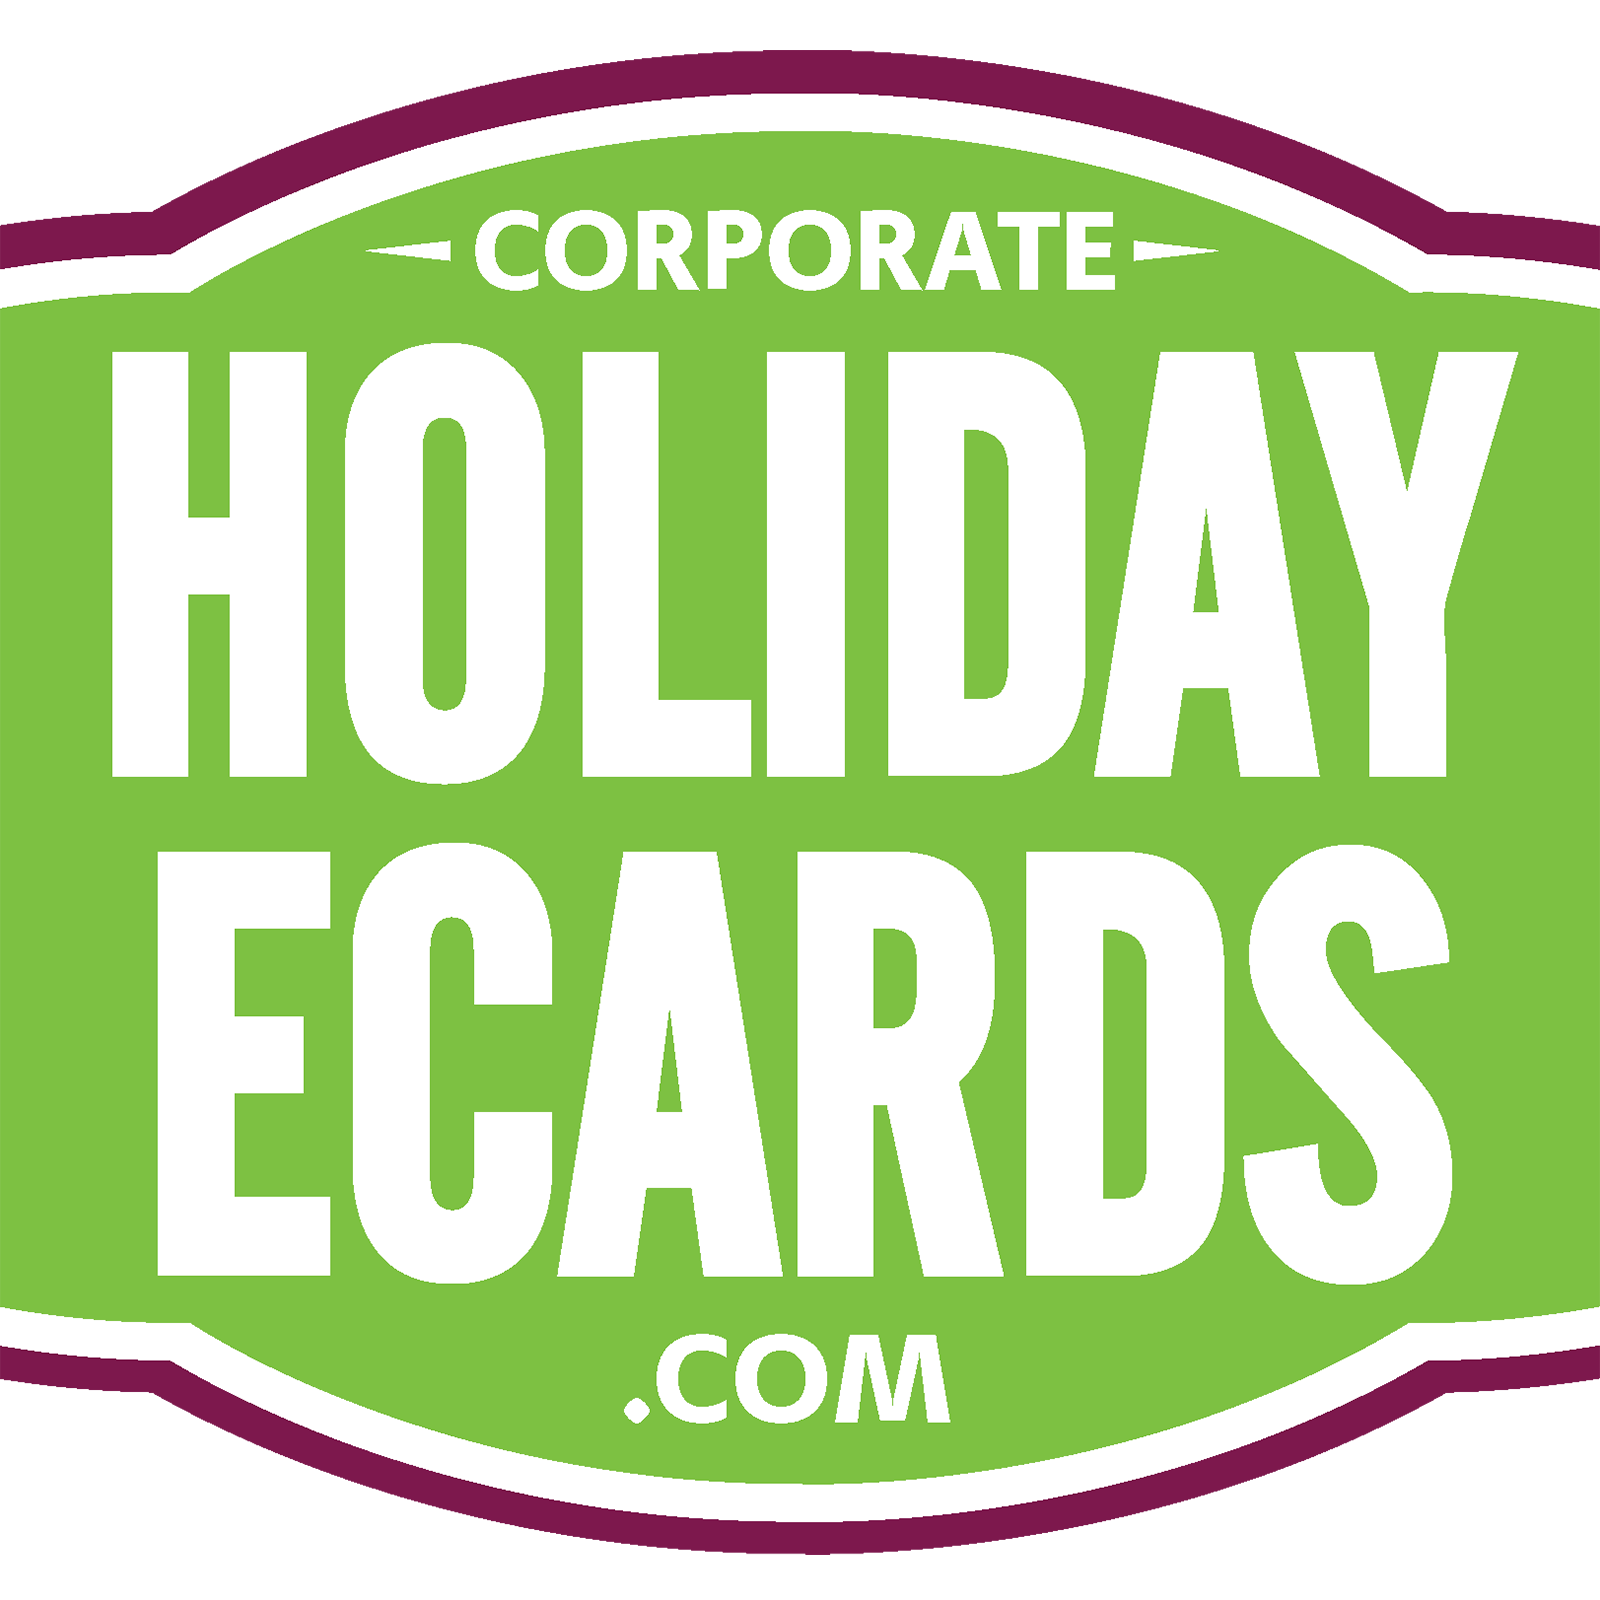 Holiday ecards for business corporateholidayecards kristyandbryce Images